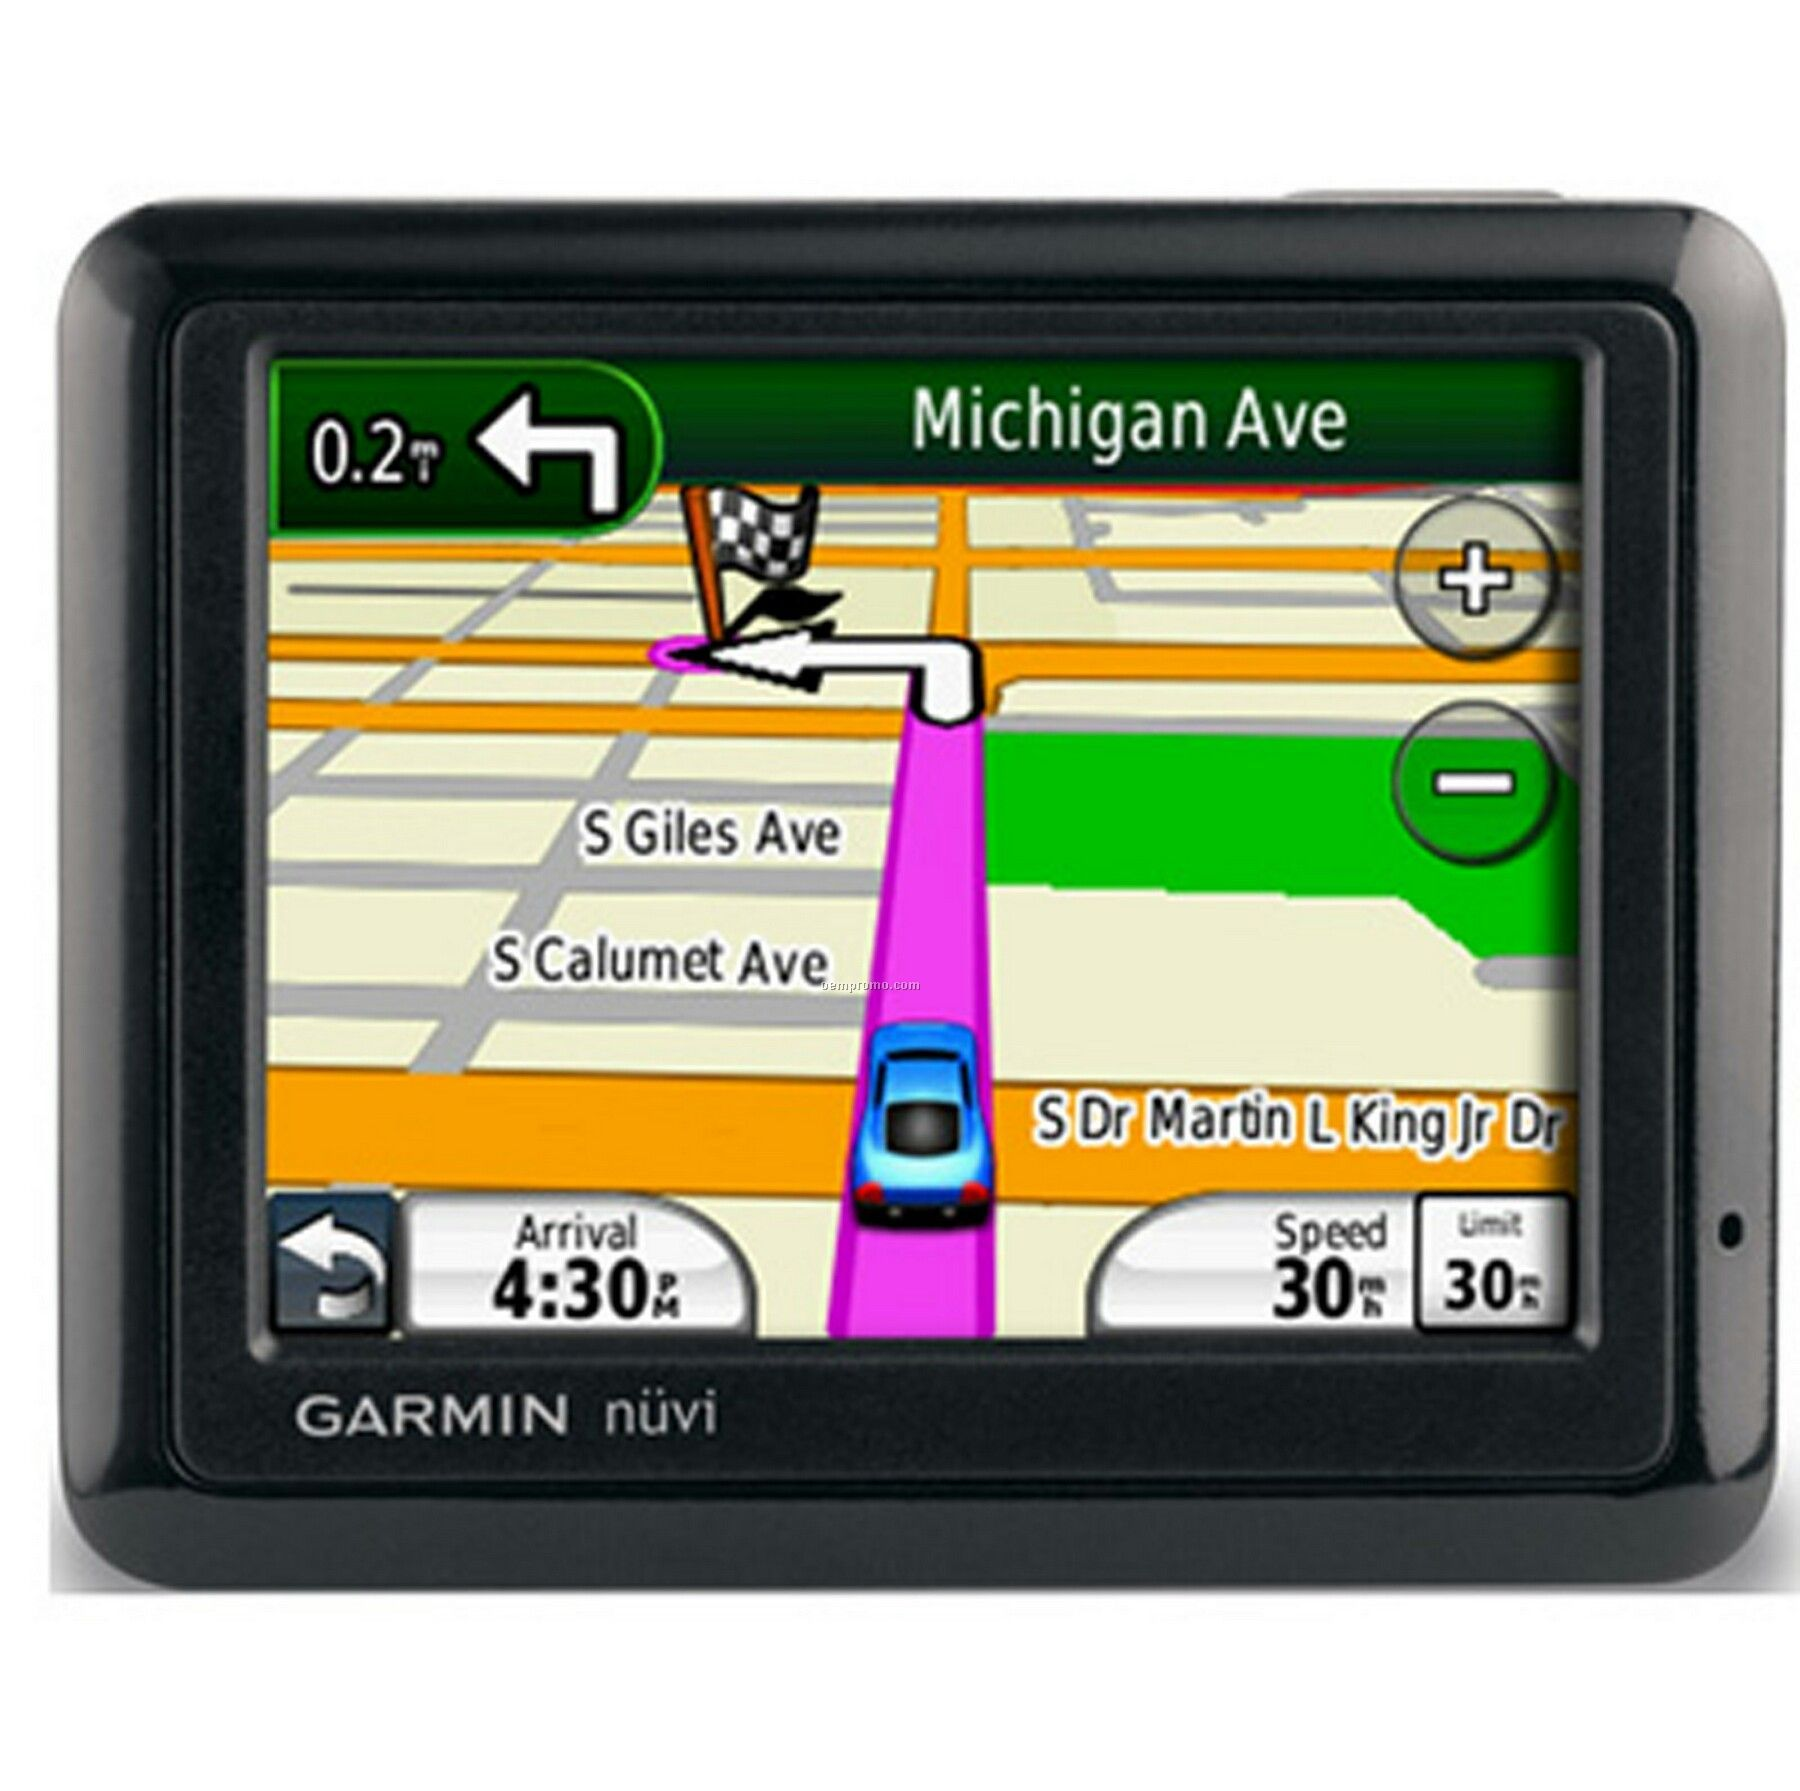 update map on garmin nuvi with Garmin Nuvi 1260t Gps Vehicle Navigation System Bluetooth Enabled 26592 on Ecuador furthermore Garmin Nuvi 1260t Gps Vehicle Navigation System Bluetooth Enabled 26592 besides Bahamas together with Gallery as well Garmin Bmw Motorrad Navigator Iv Update.